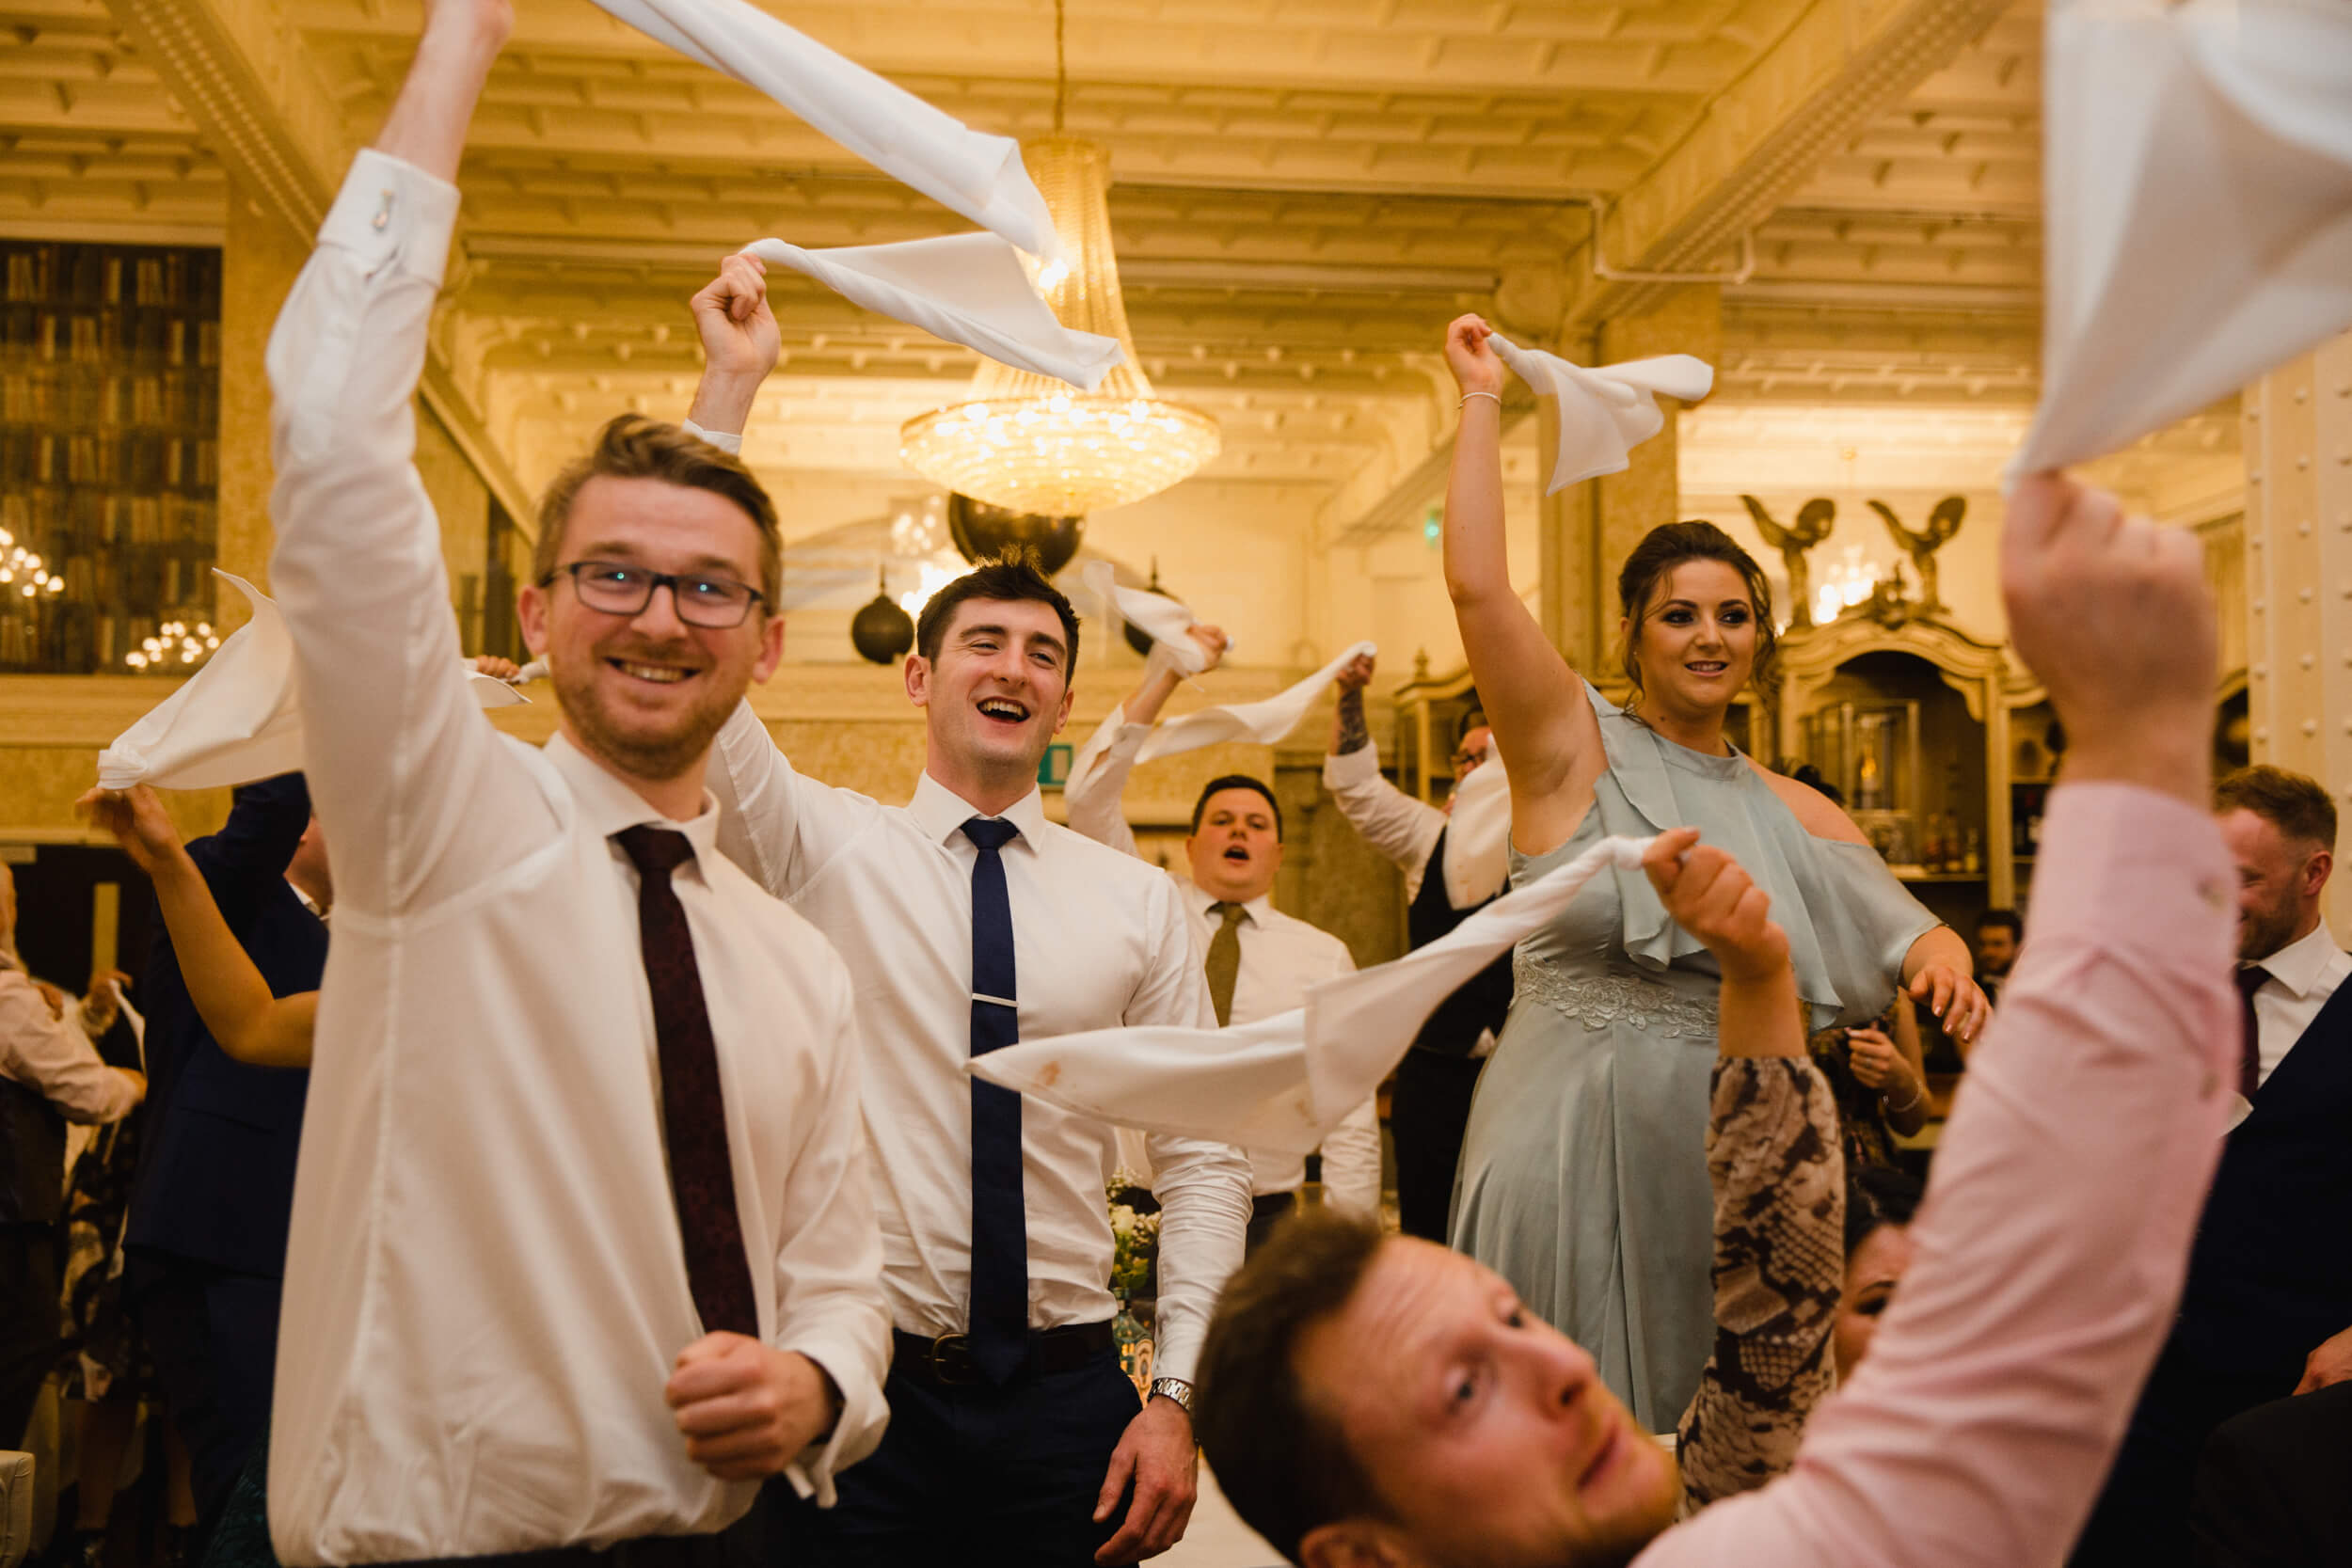 wedding guests waving napkins in the air in celebration